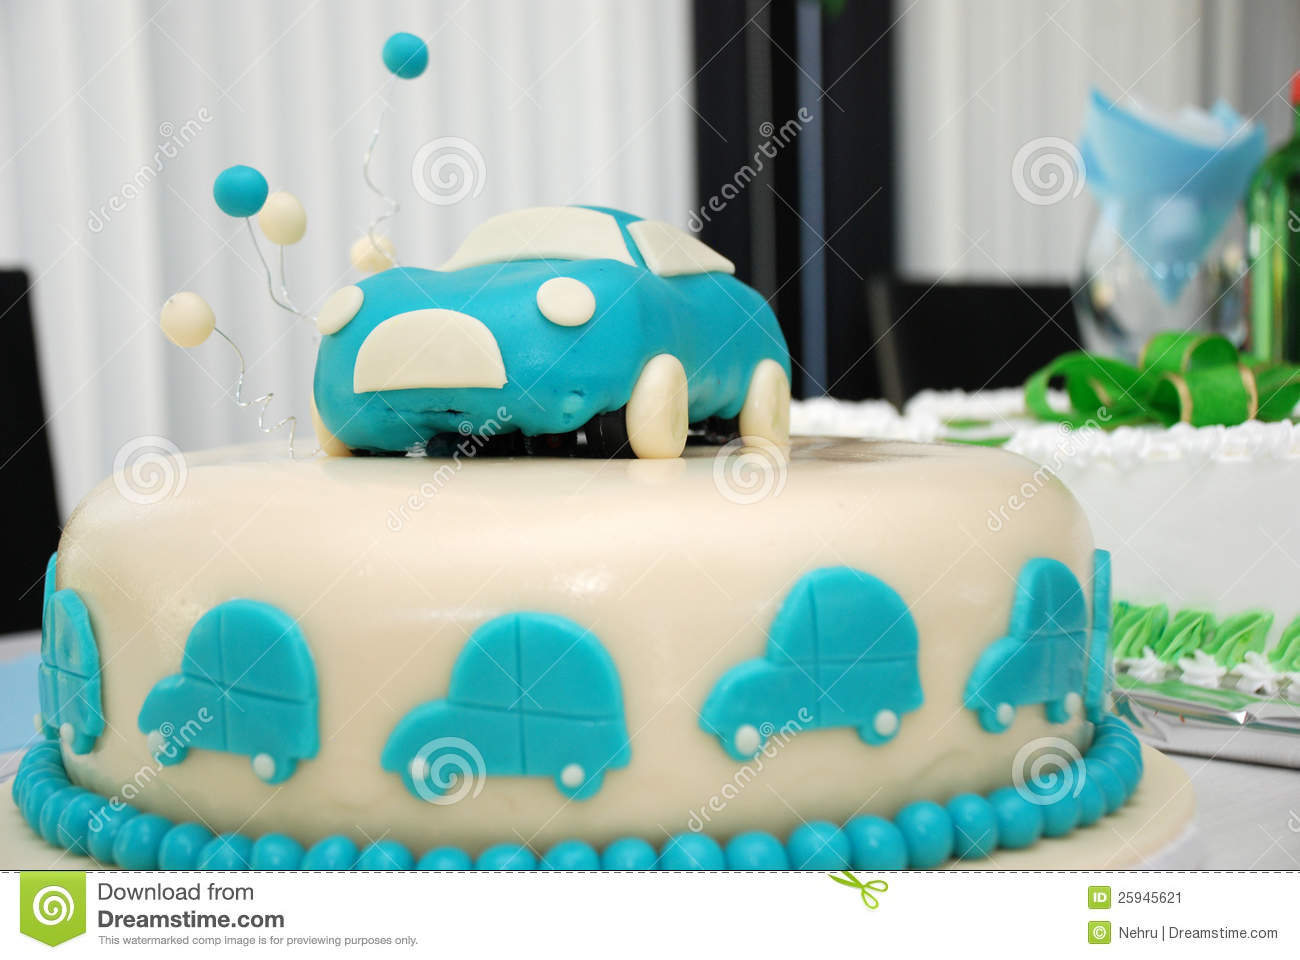 Baby Boy Blue Birthday Cake With Car Stock Image Image of frosted